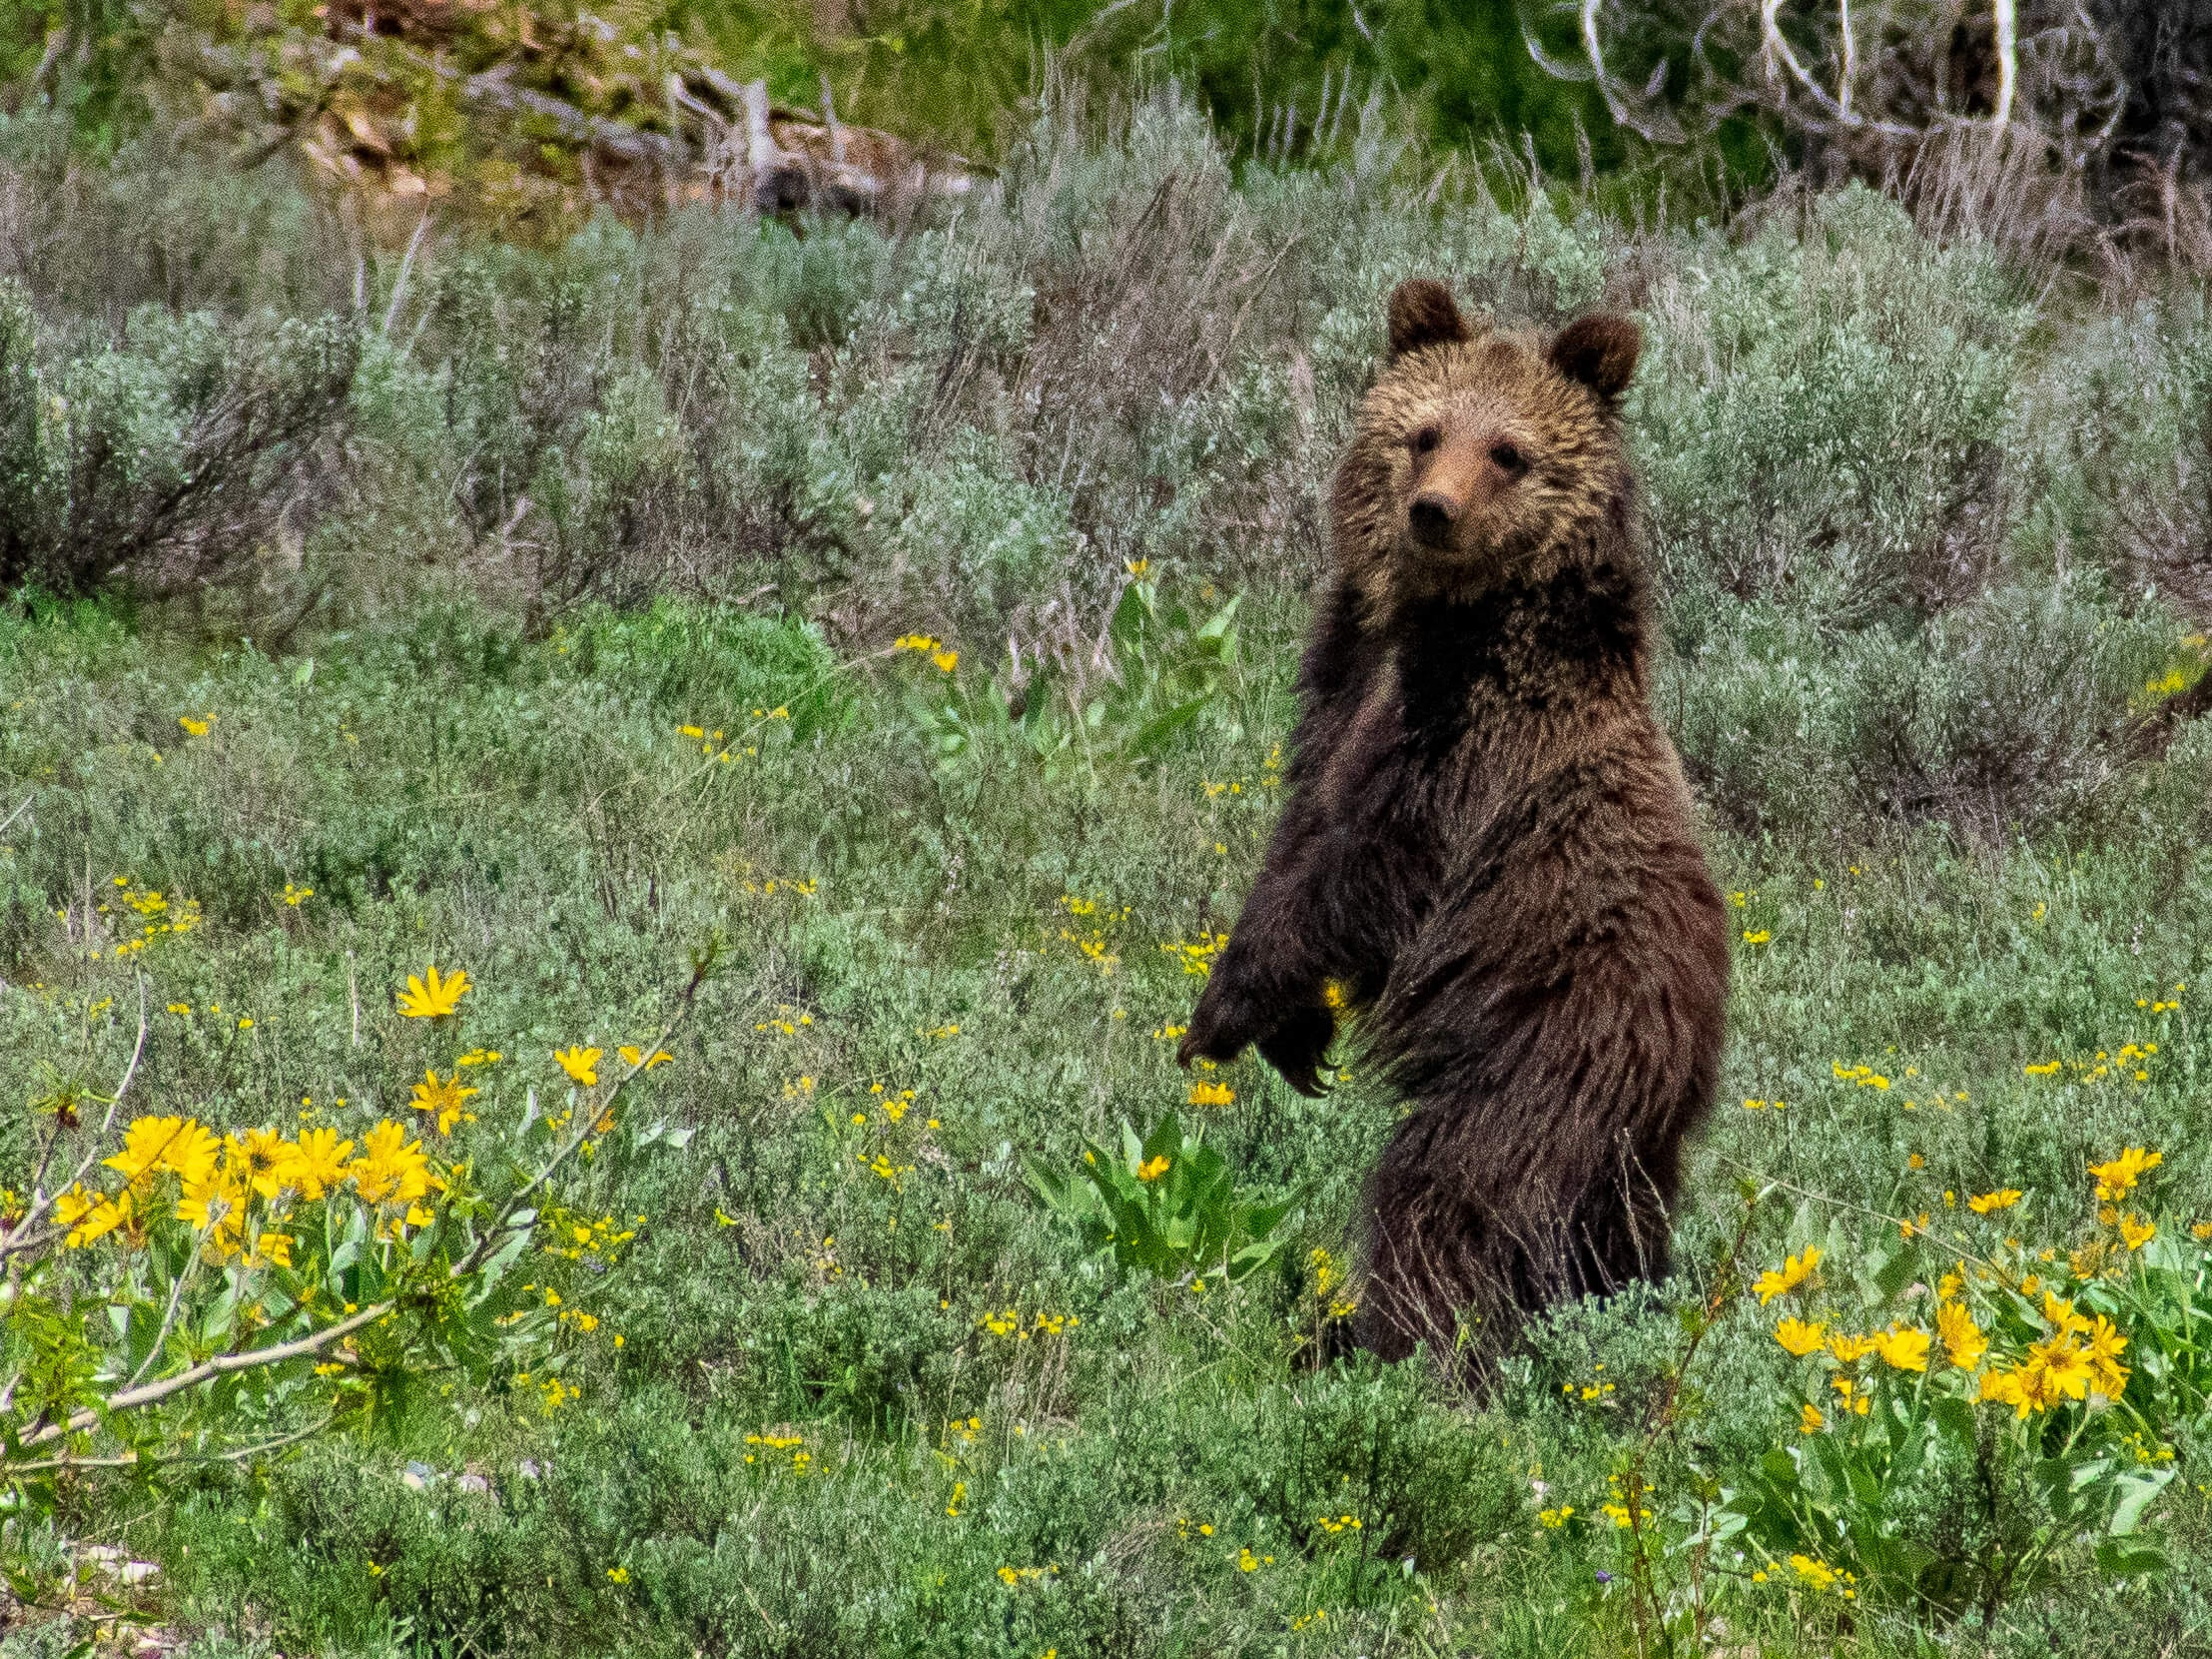 Grizzly cub standing on back legs